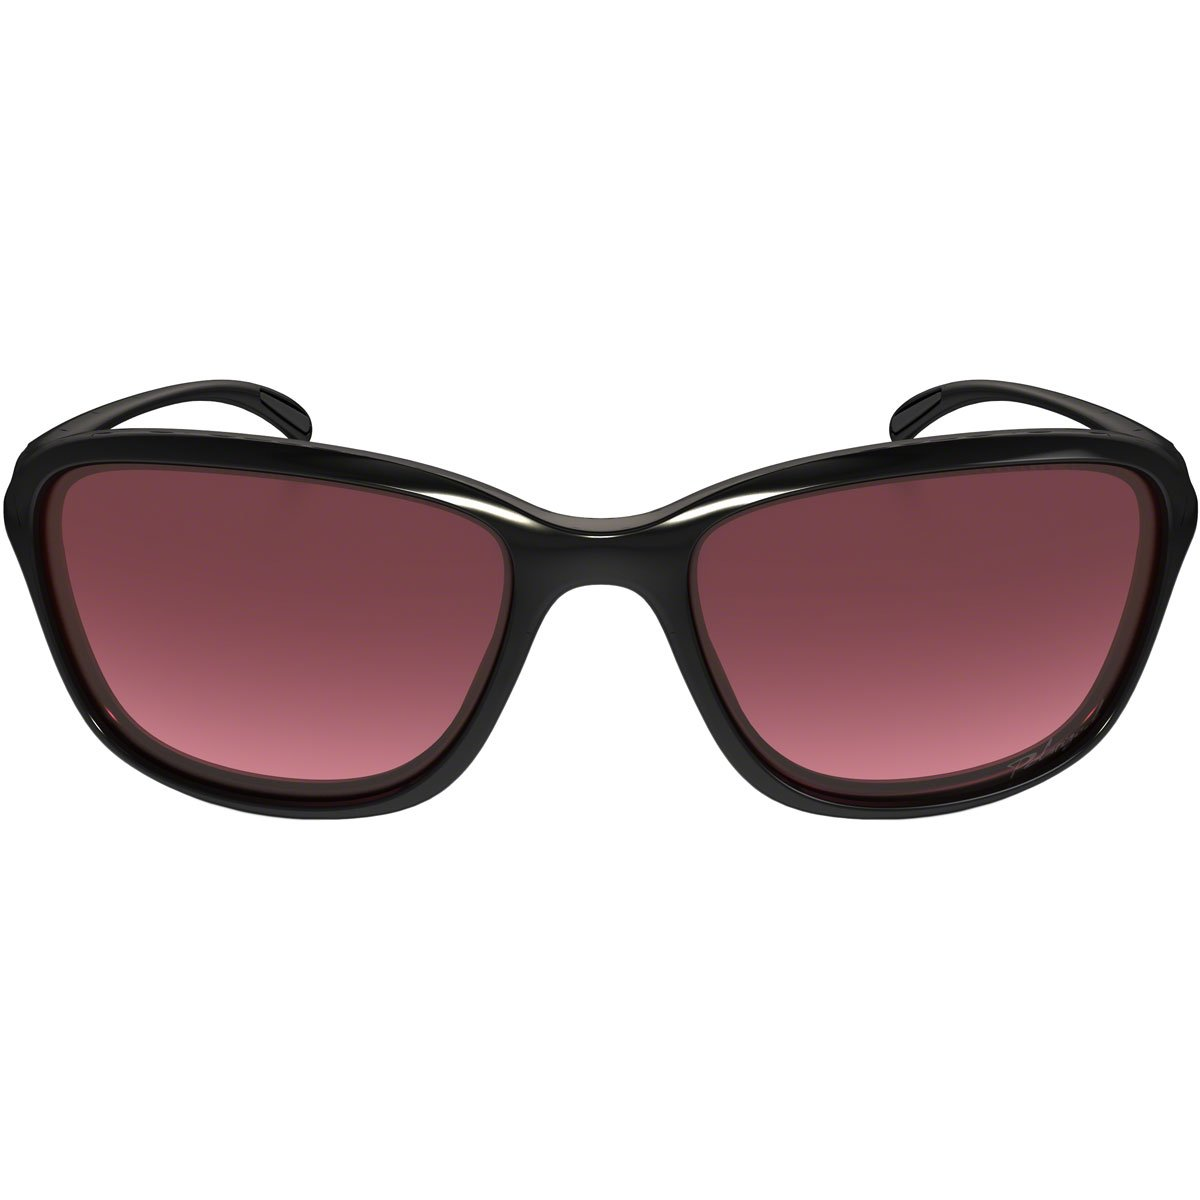 f08572a8a17 Amazon.com  Oakley Womens Unstoppable Sunglasses Black Rose  Clothing